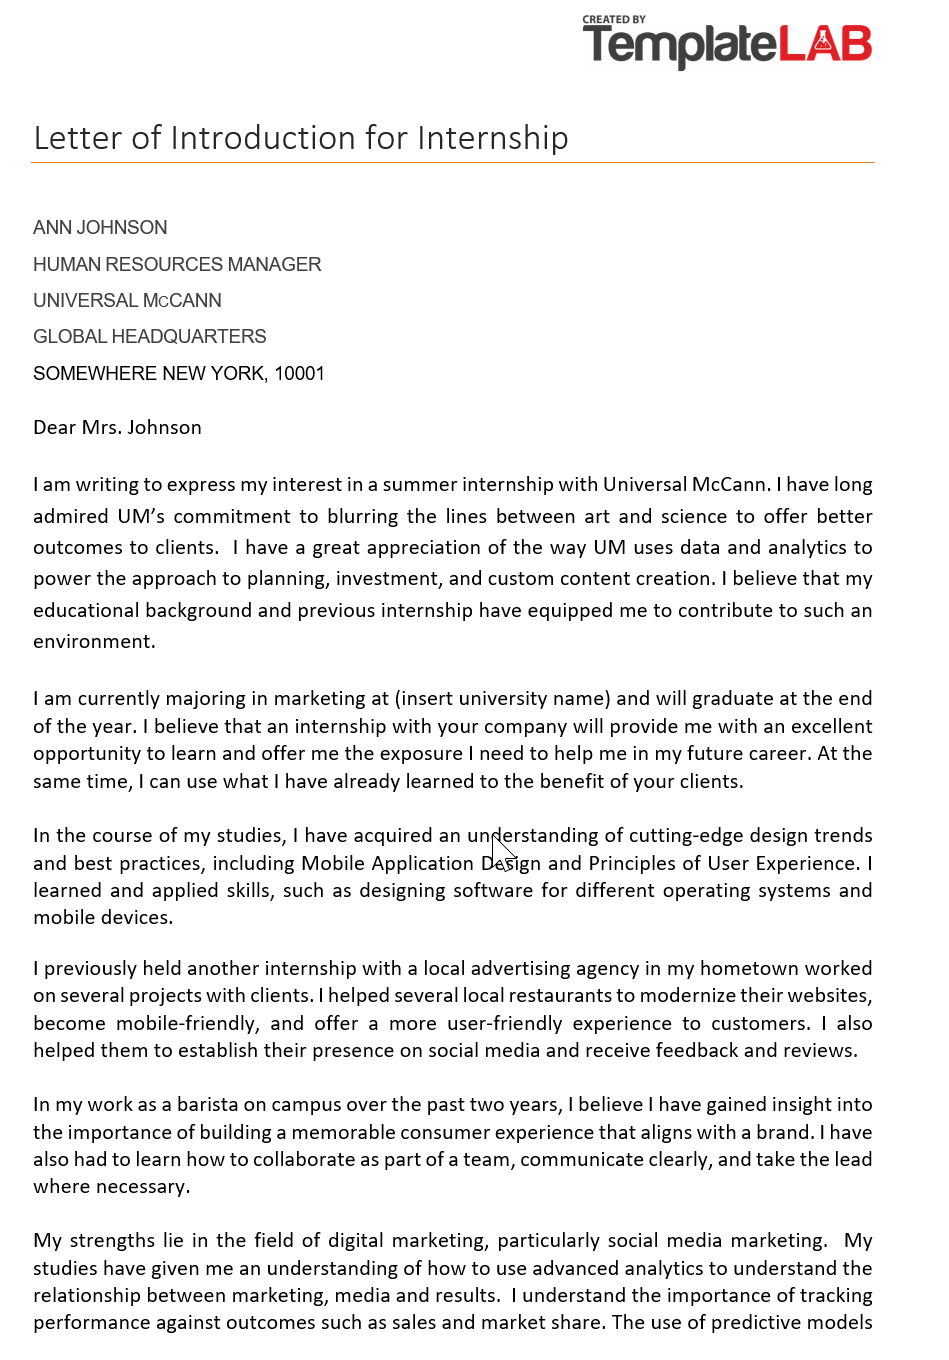 Letter-of-Introduction-for-Internship-1-TemplateLab.com_ Salesman Application Letters on for employment examples, formal job, for ojt, writing job, format example, free samples,